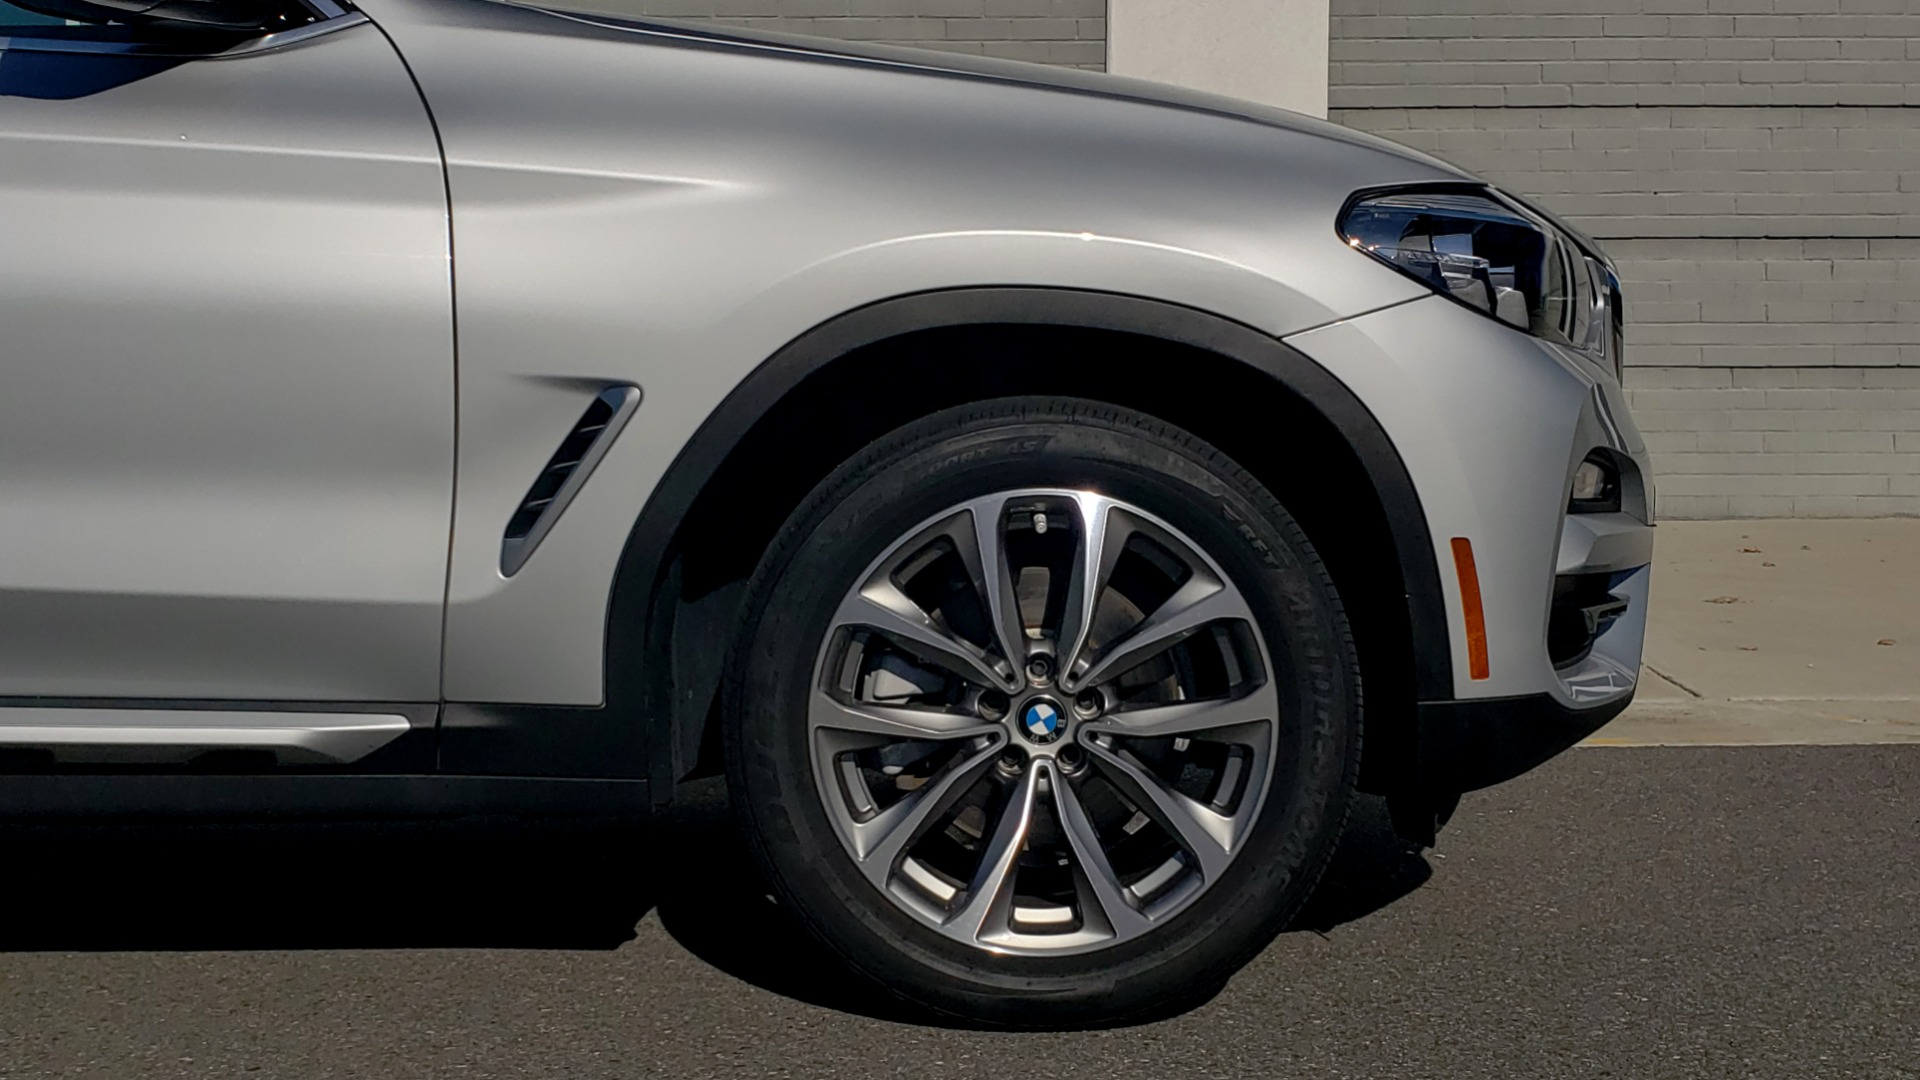 Used 2019 BMW X3 XDRIVE30I / DRVR ASST / PANO-ROOF / HTD STS / REARVIEW for sale $41,995 at Formula Imports in Charlotte NC 28227 84